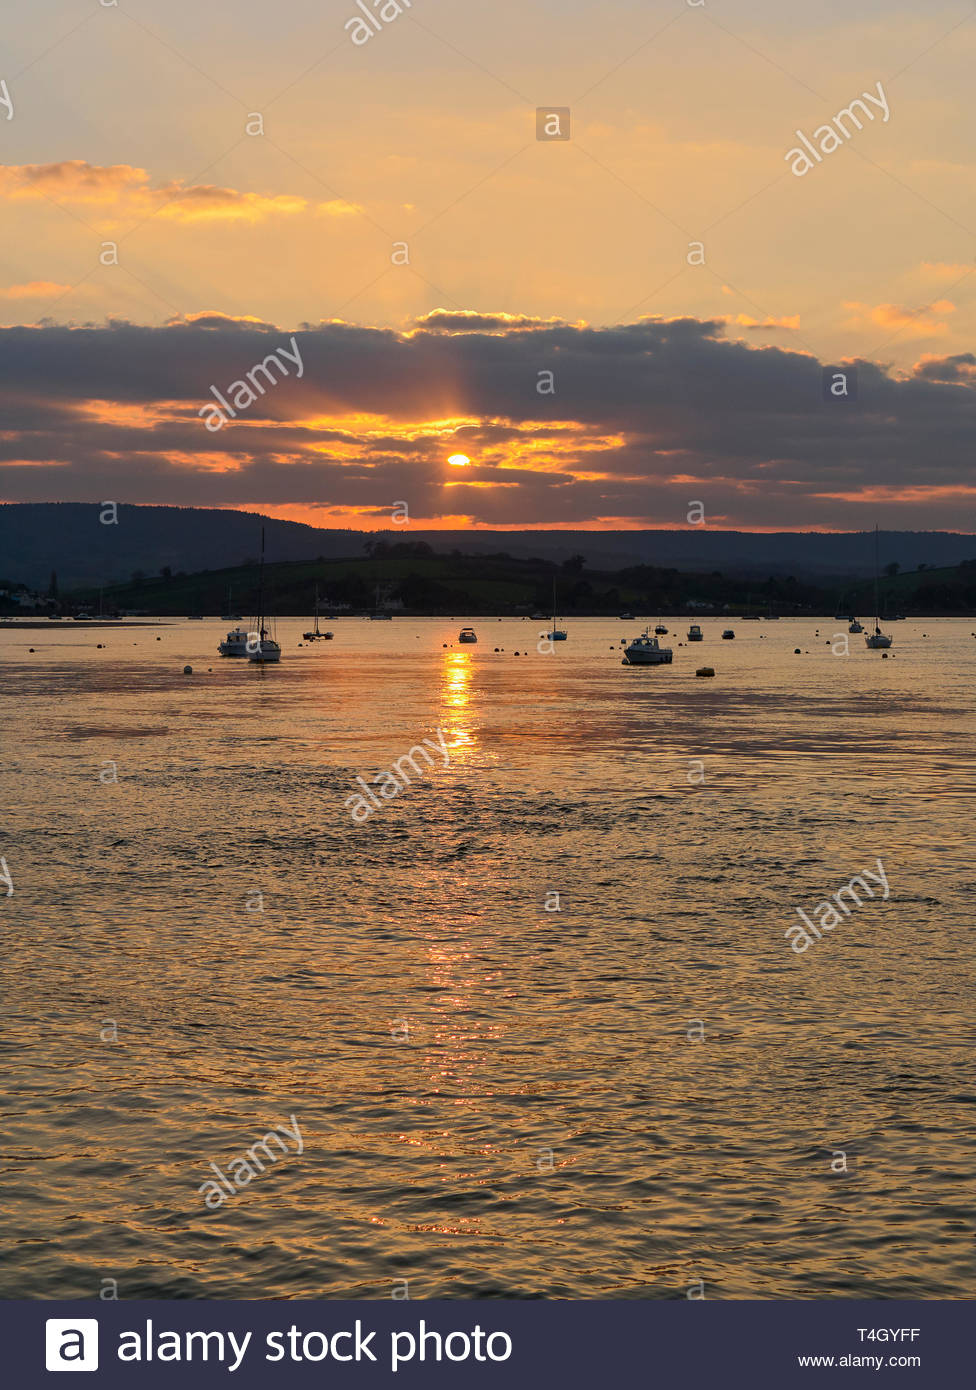 Sunset on the river exe estuary in the seaside resort of exmouth in south devon england uk Stock Photo